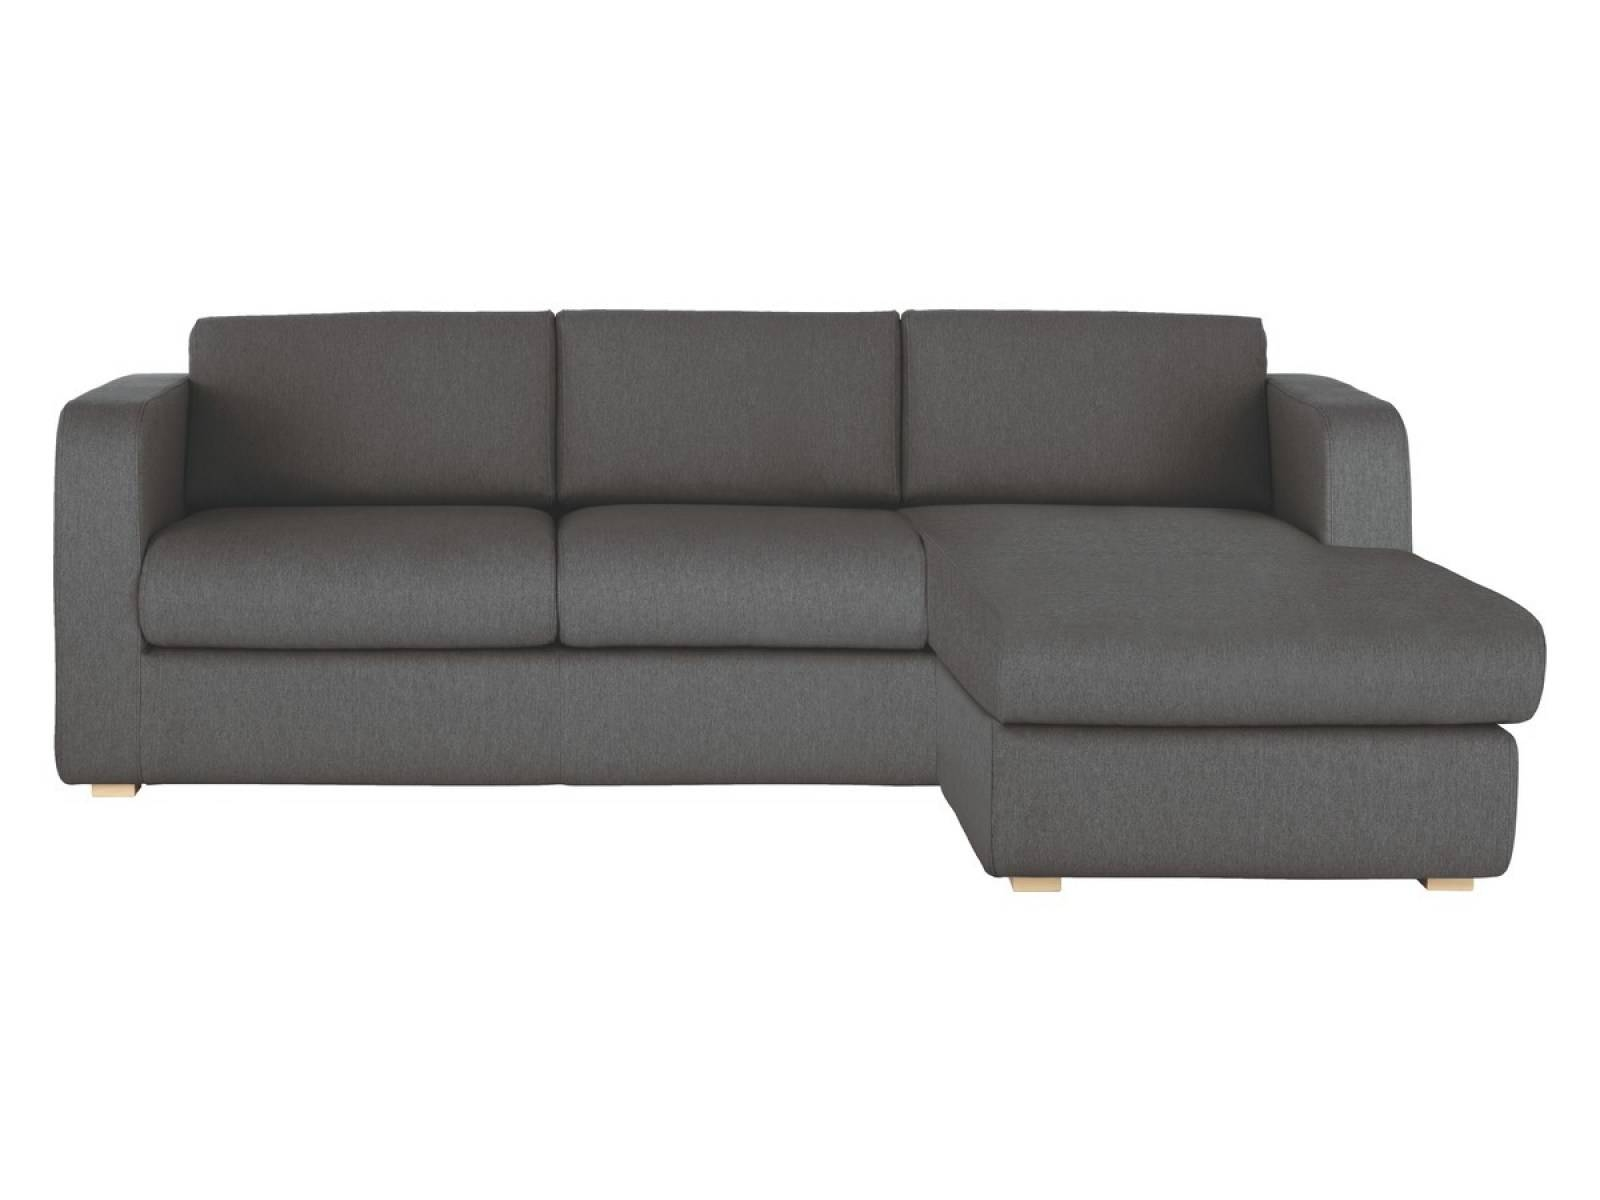 ▻ Sofa : 9 Inspirational Sofa Beds Sears 17 With Additional Sofas with Sears Sofa (Image 25 of 25)